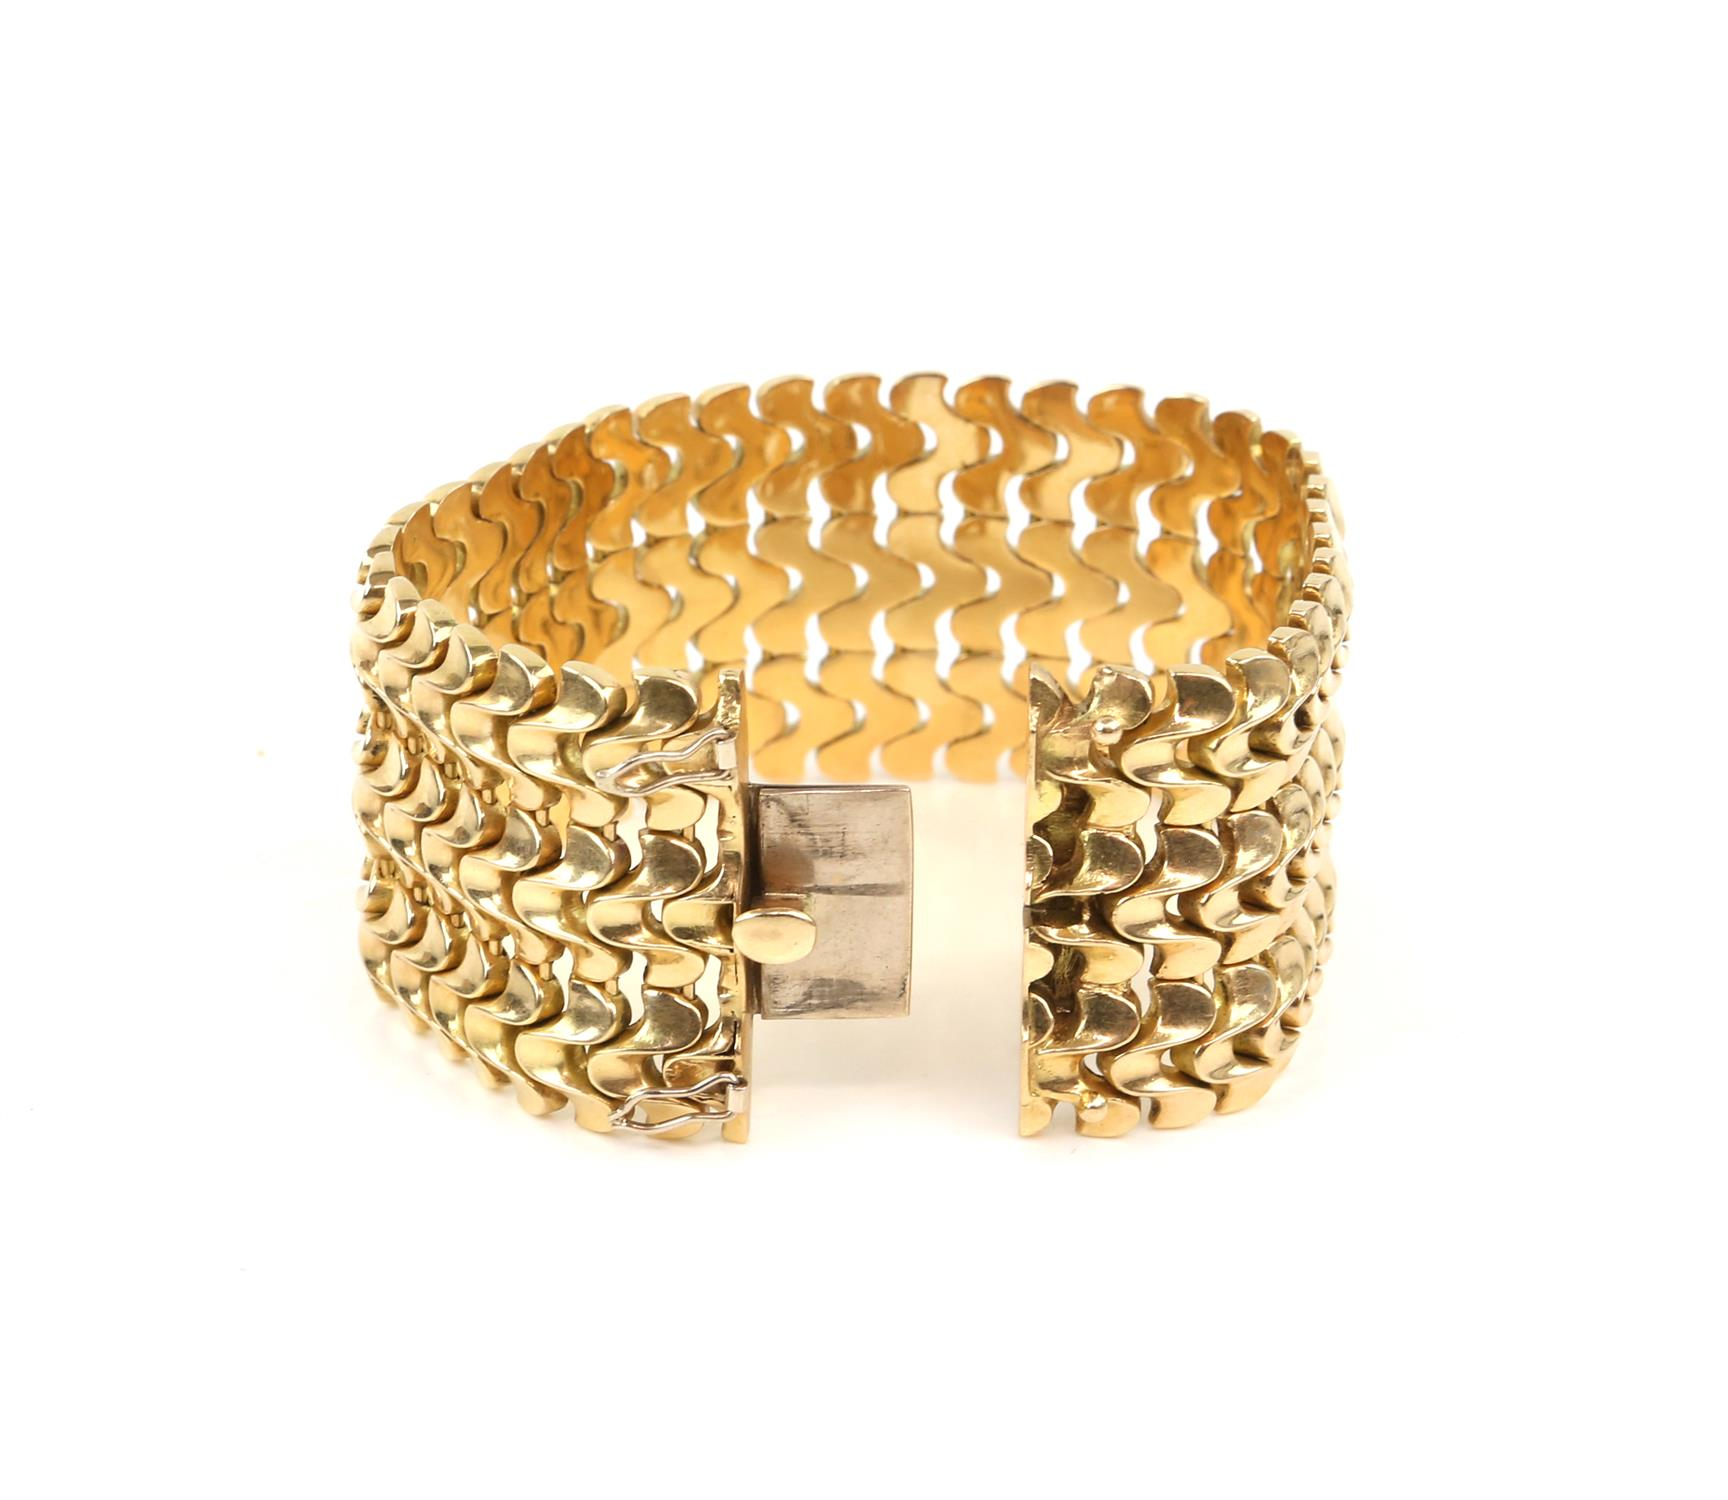 Vintage gold bracelet, three rows of fancy links, 3.5cm in width, with concealed push clasp, - Image 3 of 4